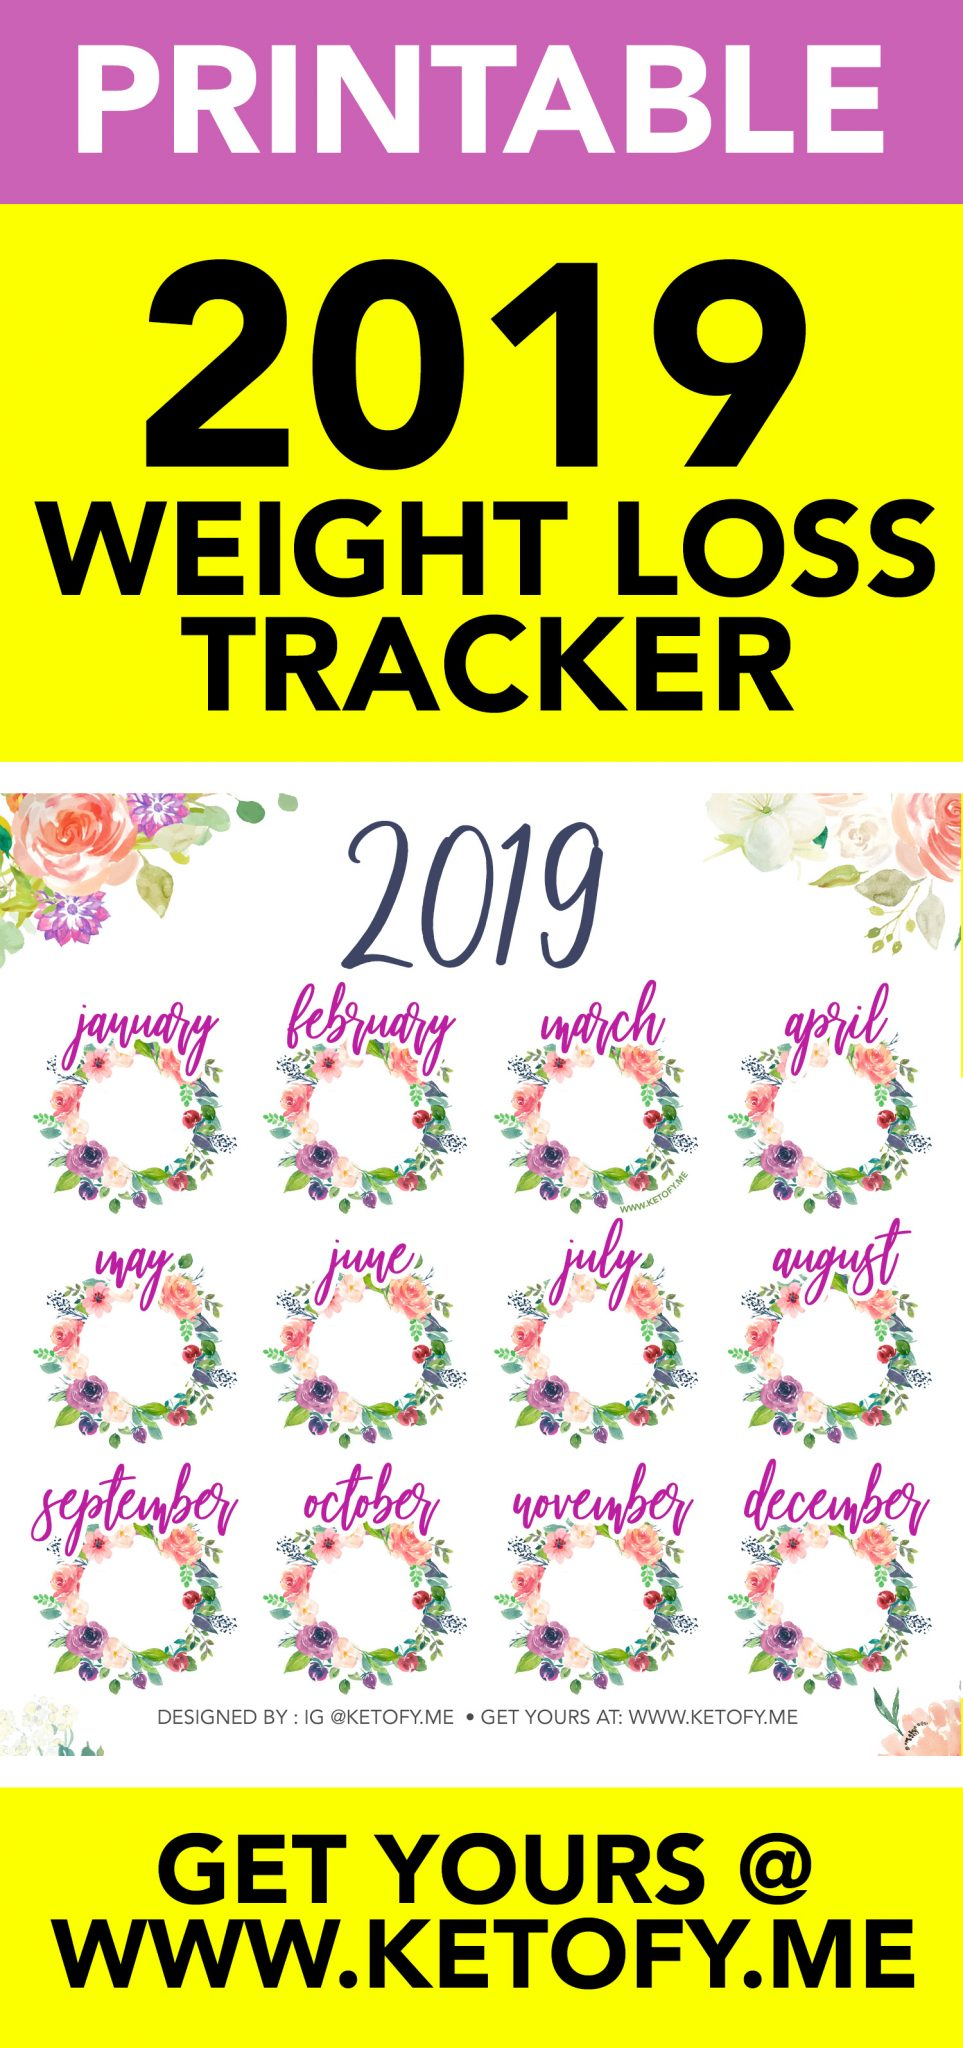 KETOFY.ME CALENDAR | Printable 2019 Calendar | 2019 Keto Calendar | 2019 Calendar | 2019 Weight Loss Calendar | 2019 Progress Calendar | 2019 Weight Loss Calendar